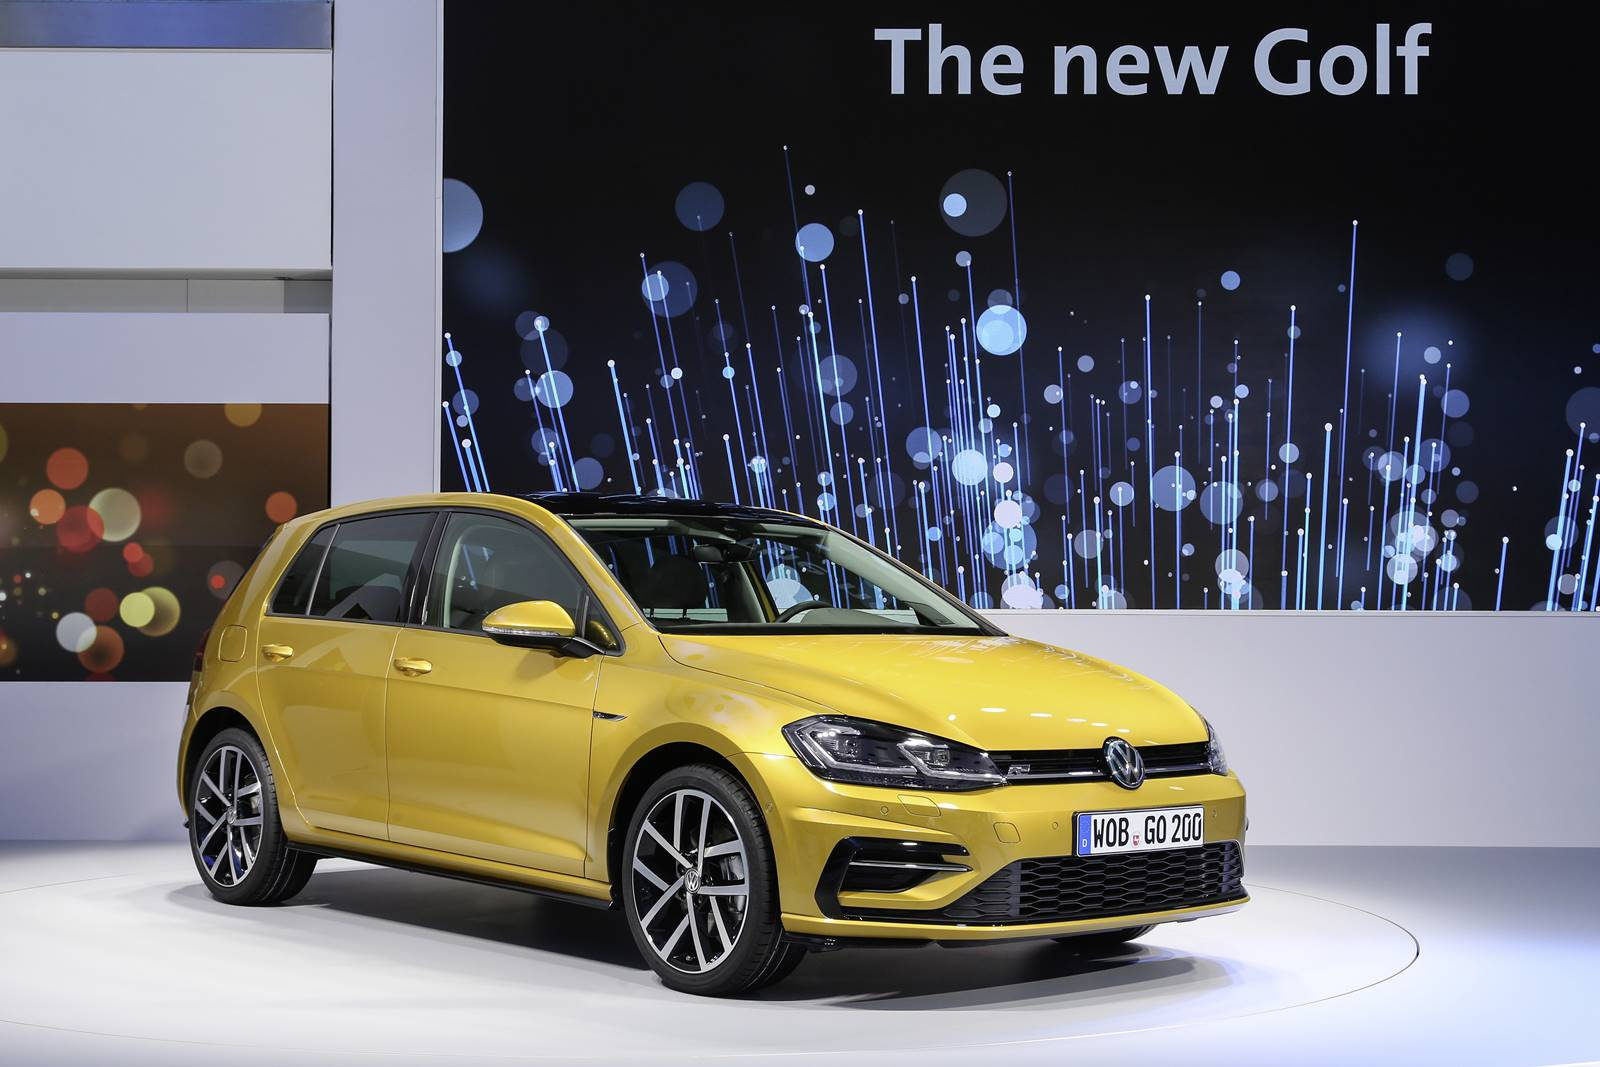 Novo vw polo gti 2015 fotos e especifica 231 245 es oficiais car blog br - Novo Vw Golf 2017